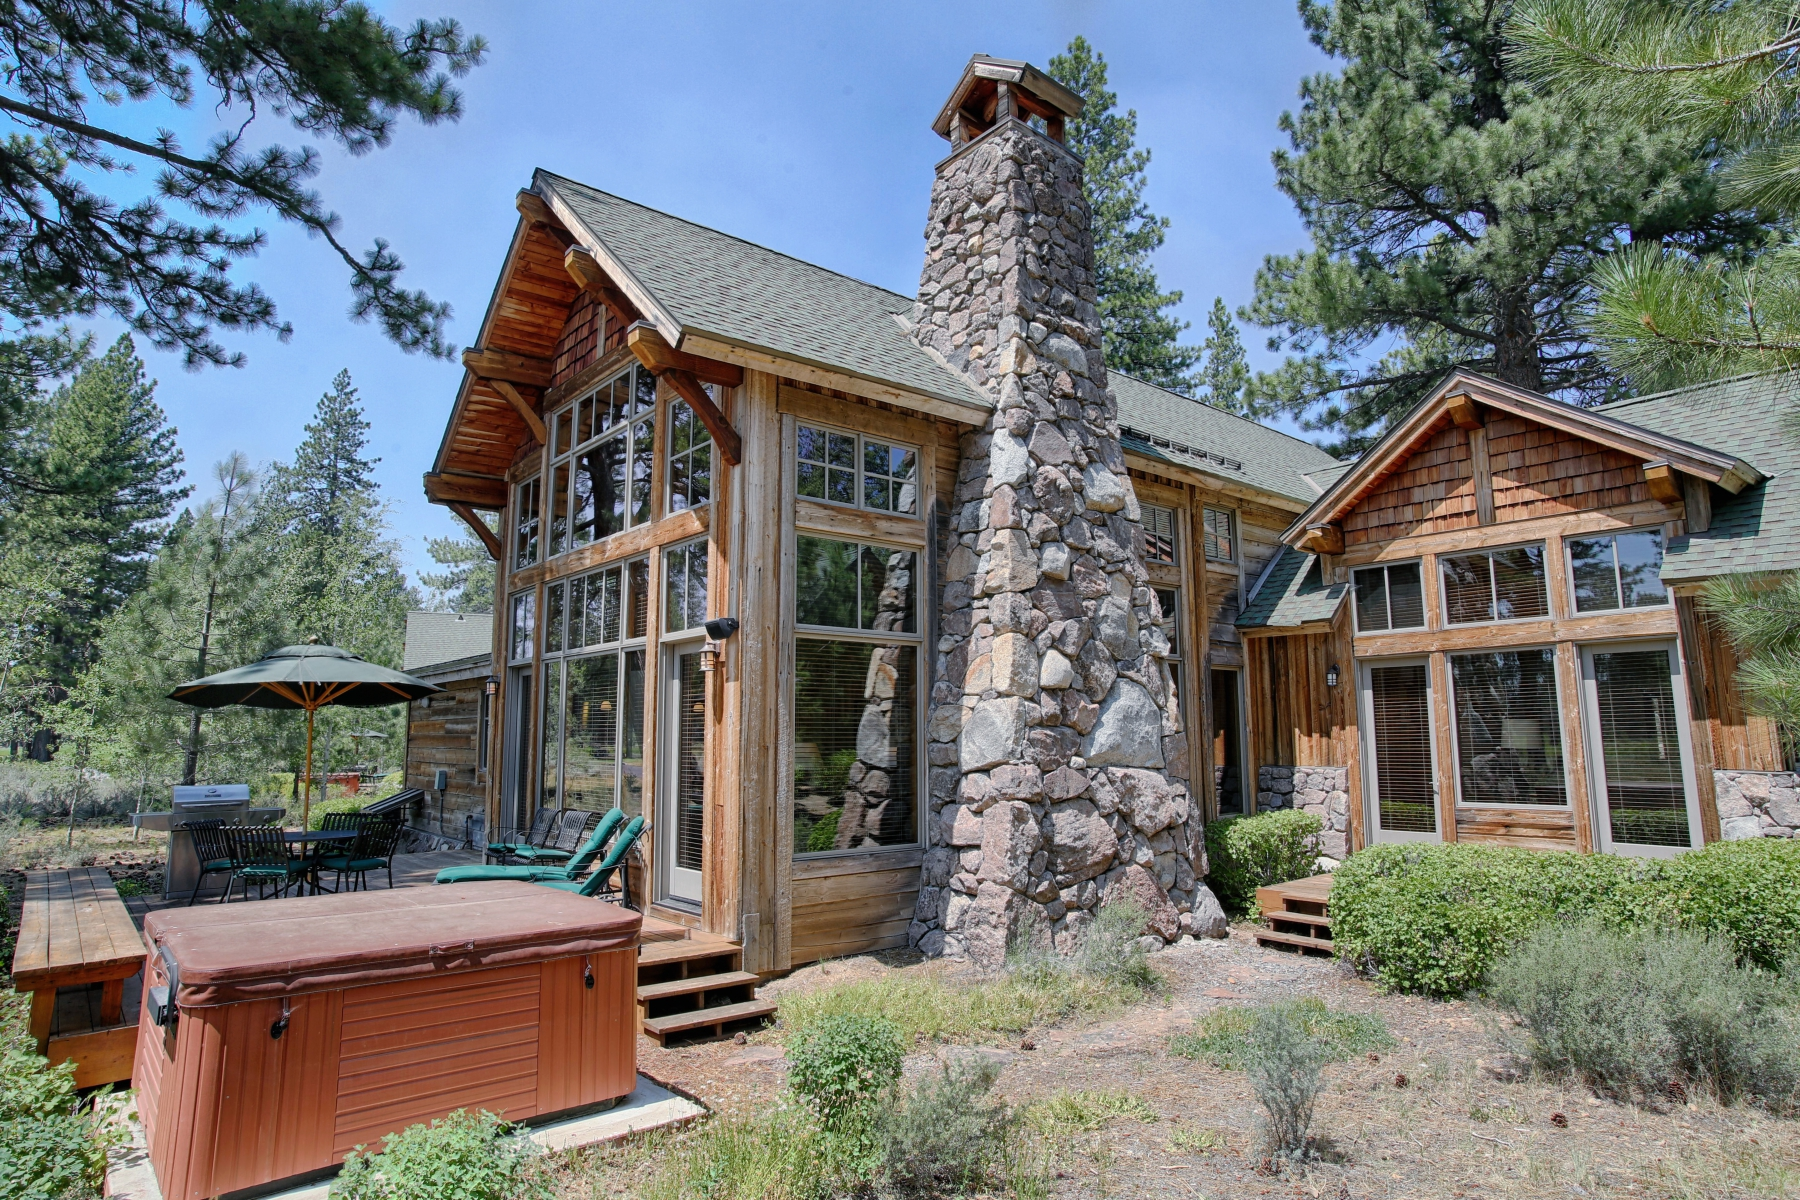 Single Family Home for Active at 12503 Lookout Loop, F19-24, Truckee, California 96161 12503 Lookout Loop F19-24 Truckee, California 96161 United States